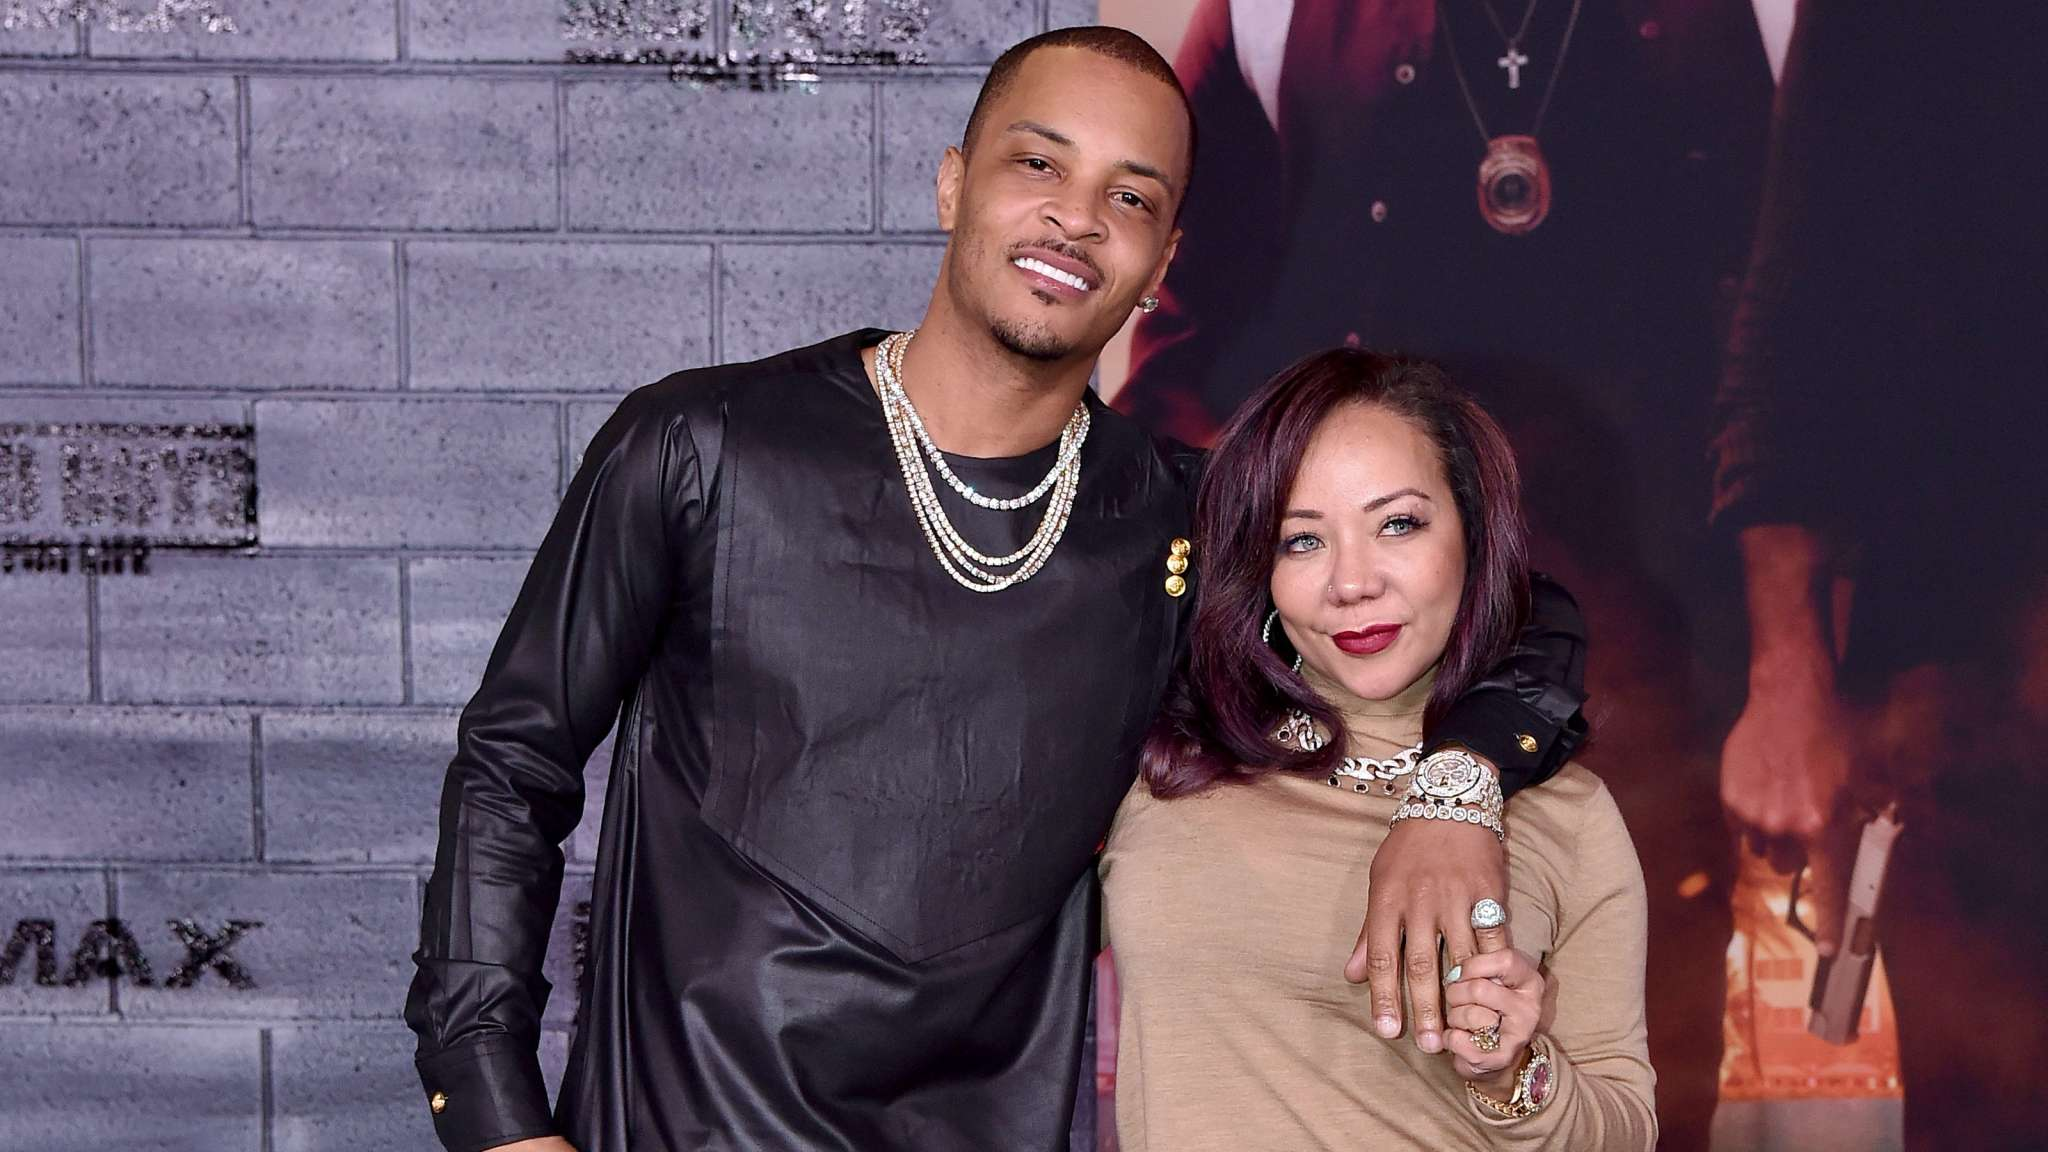 tiny-harris-makes-fans-happy-with-this-video-featuring-heiress-harris